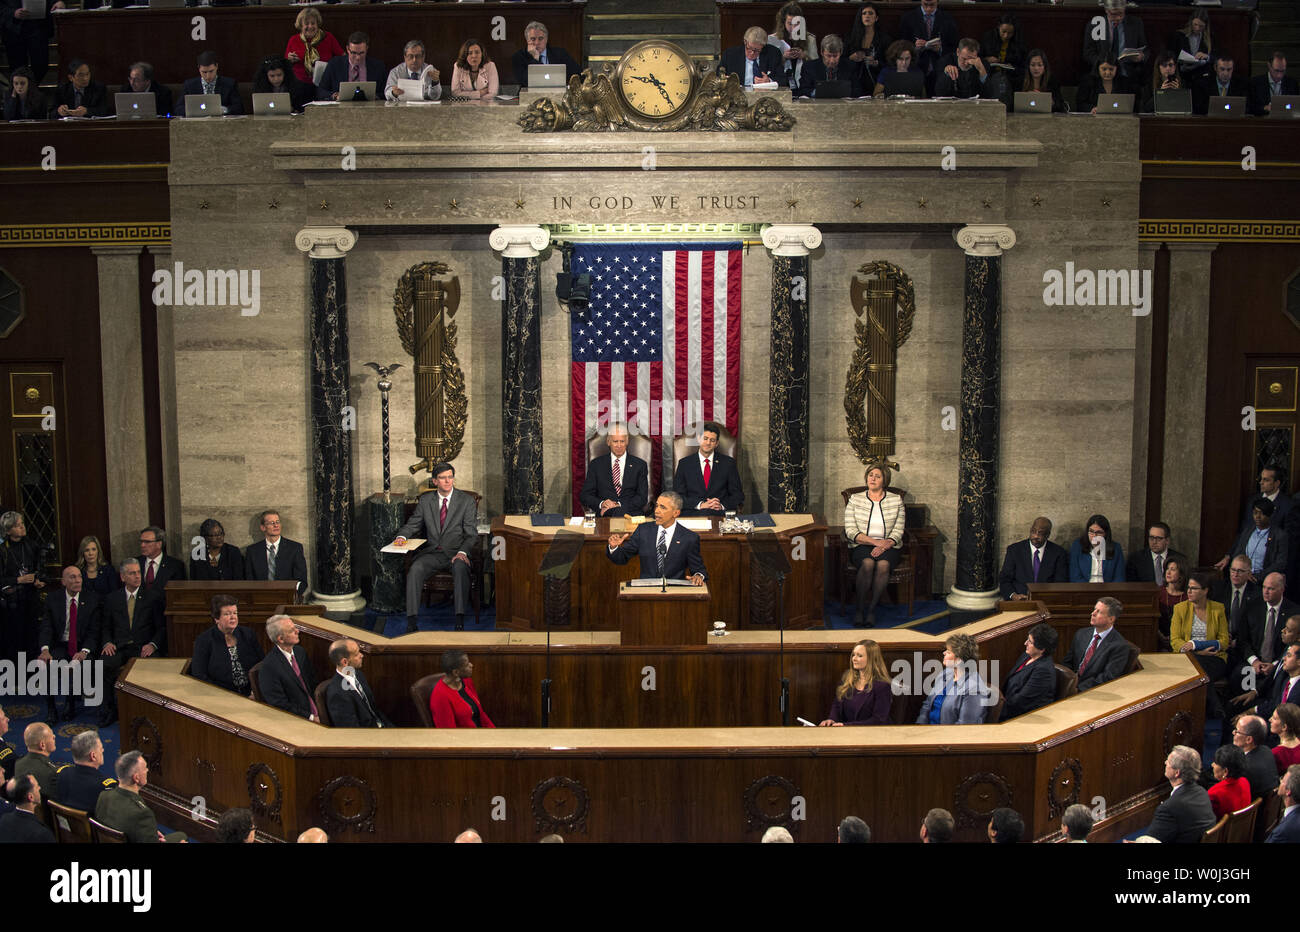 President Barack Obama delivers his State of the Union address before a joint session of Congress on Capitol Hill in Washington, DC on January 12, 2016.   The president addressed some of the anxieties of the nation while also noting the progress over the past seven years and his optimistic outlook for the country.   Photo by Pat Benic/UPI - Stock Image